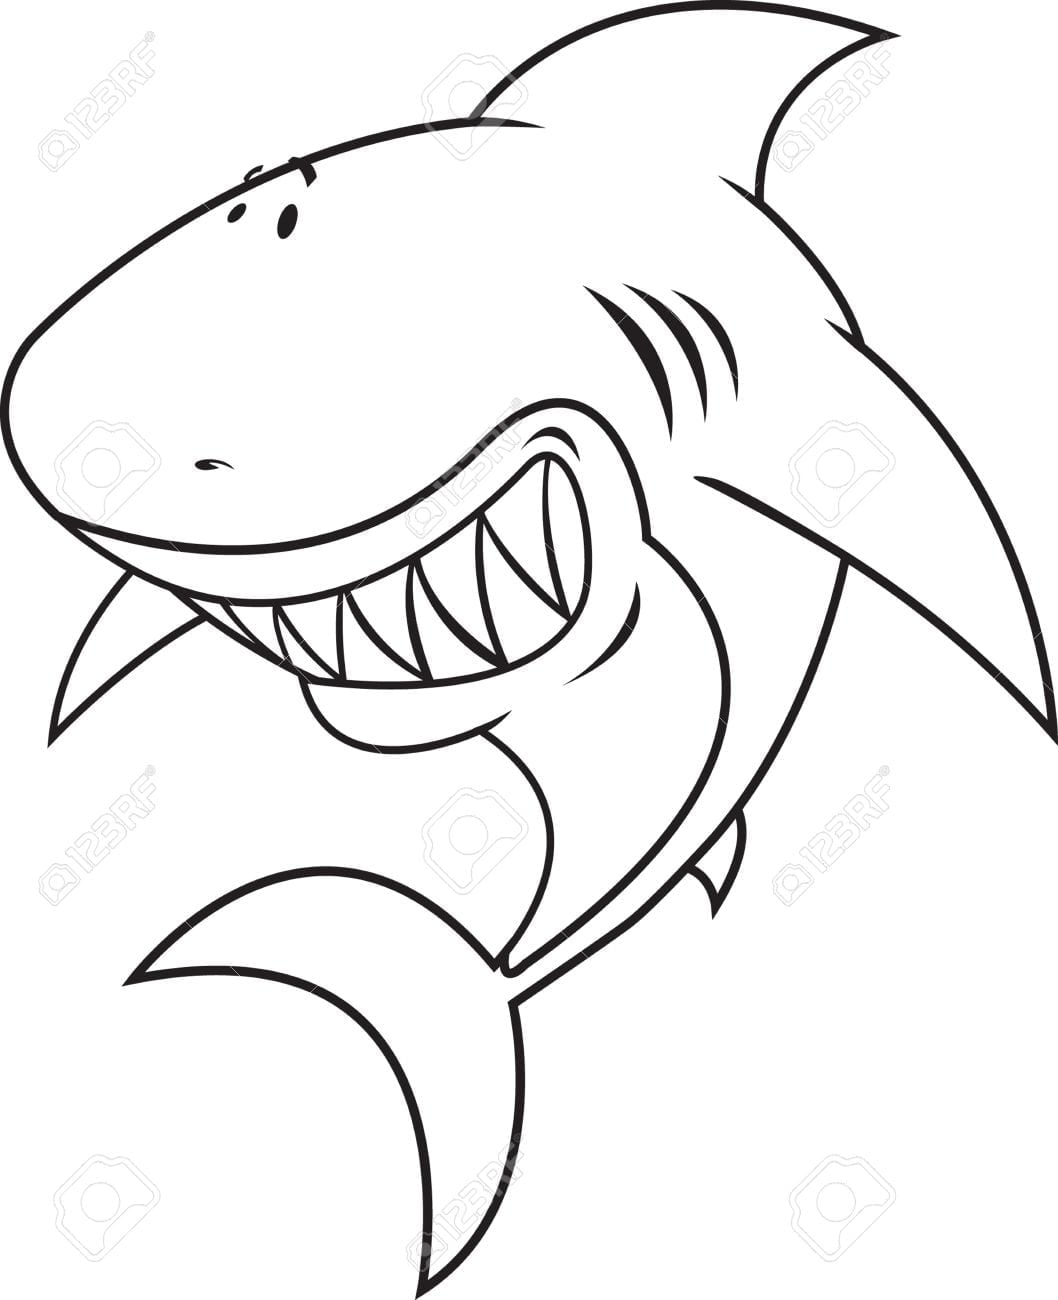 Great White Shark Coloring Book Illustration Royalty Free Cliparts